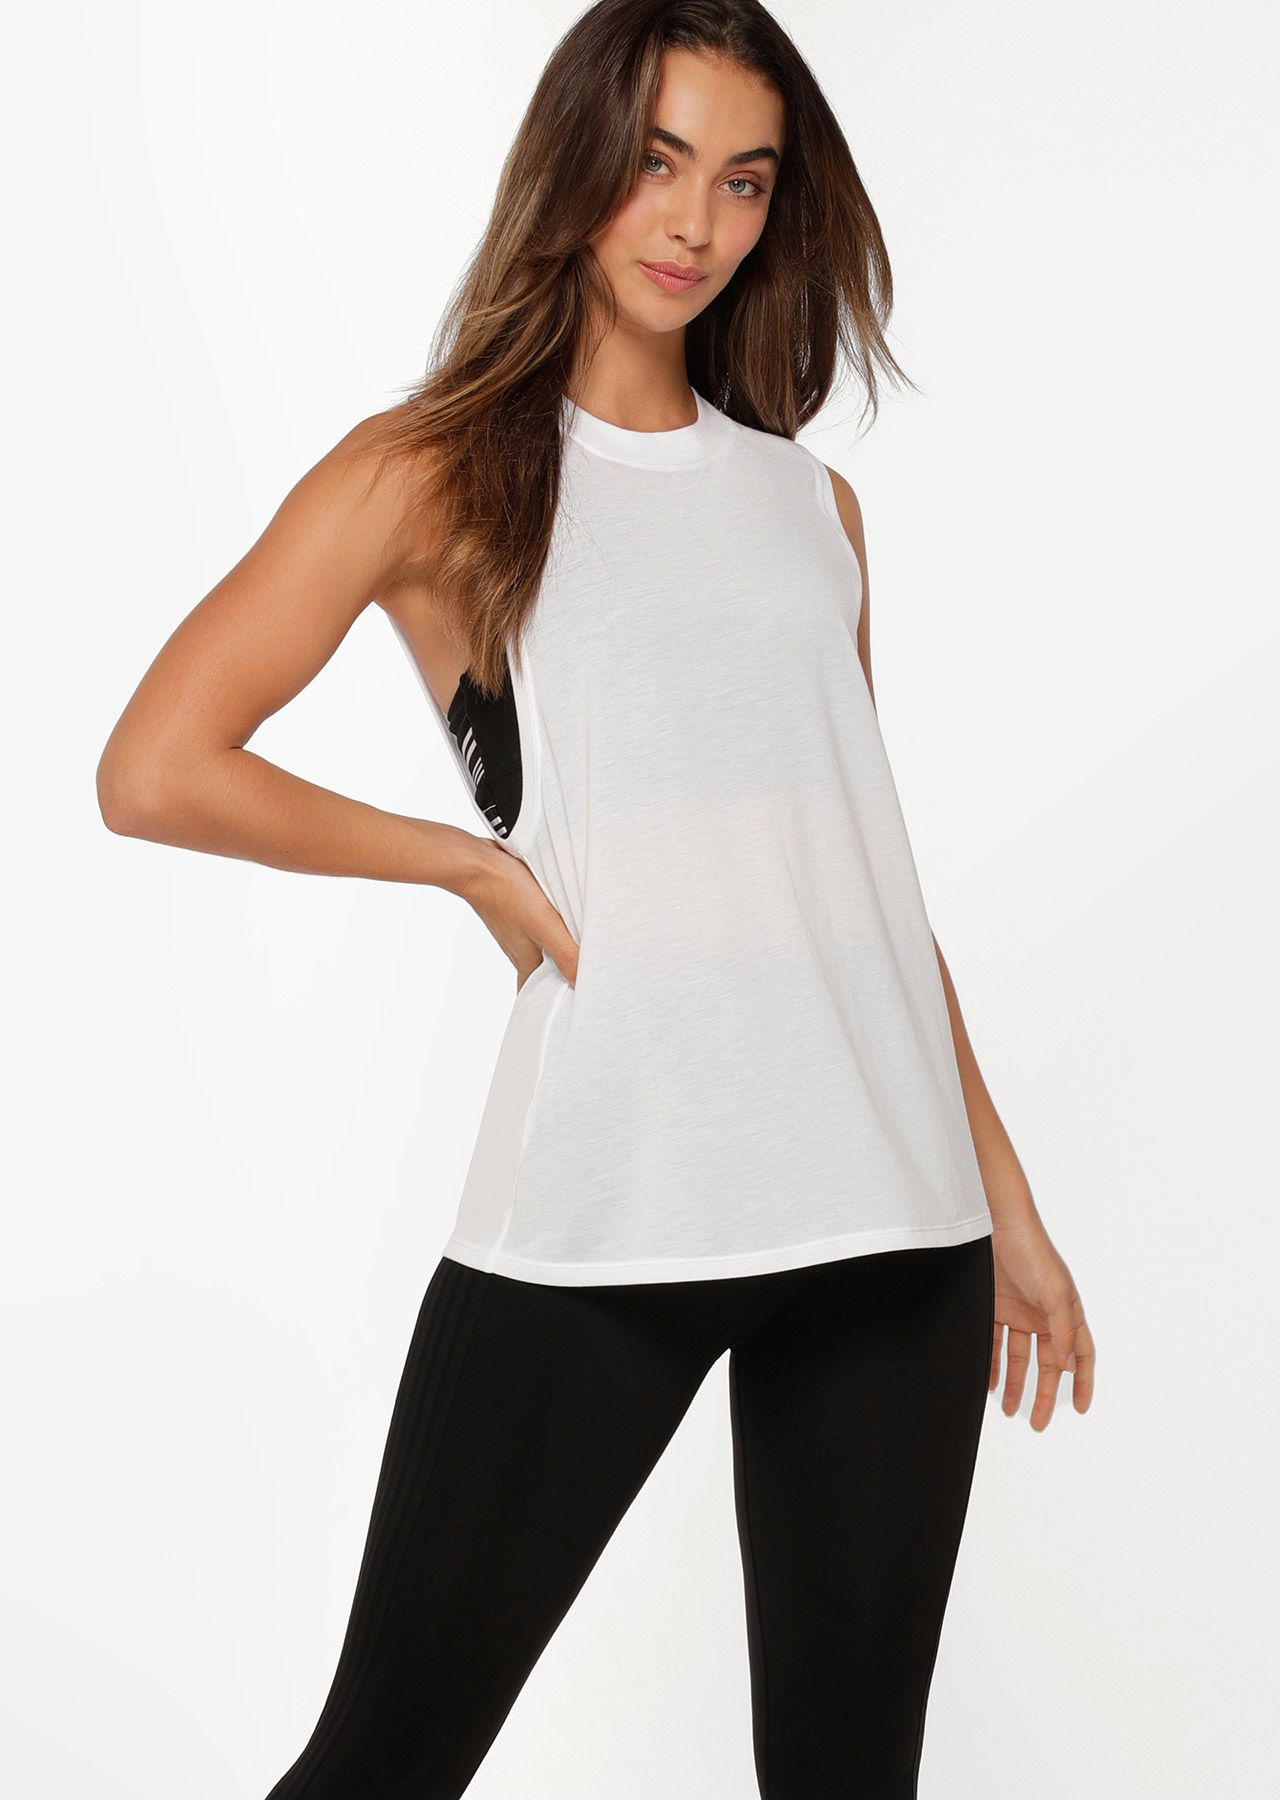 Knock Out Muscle Tank